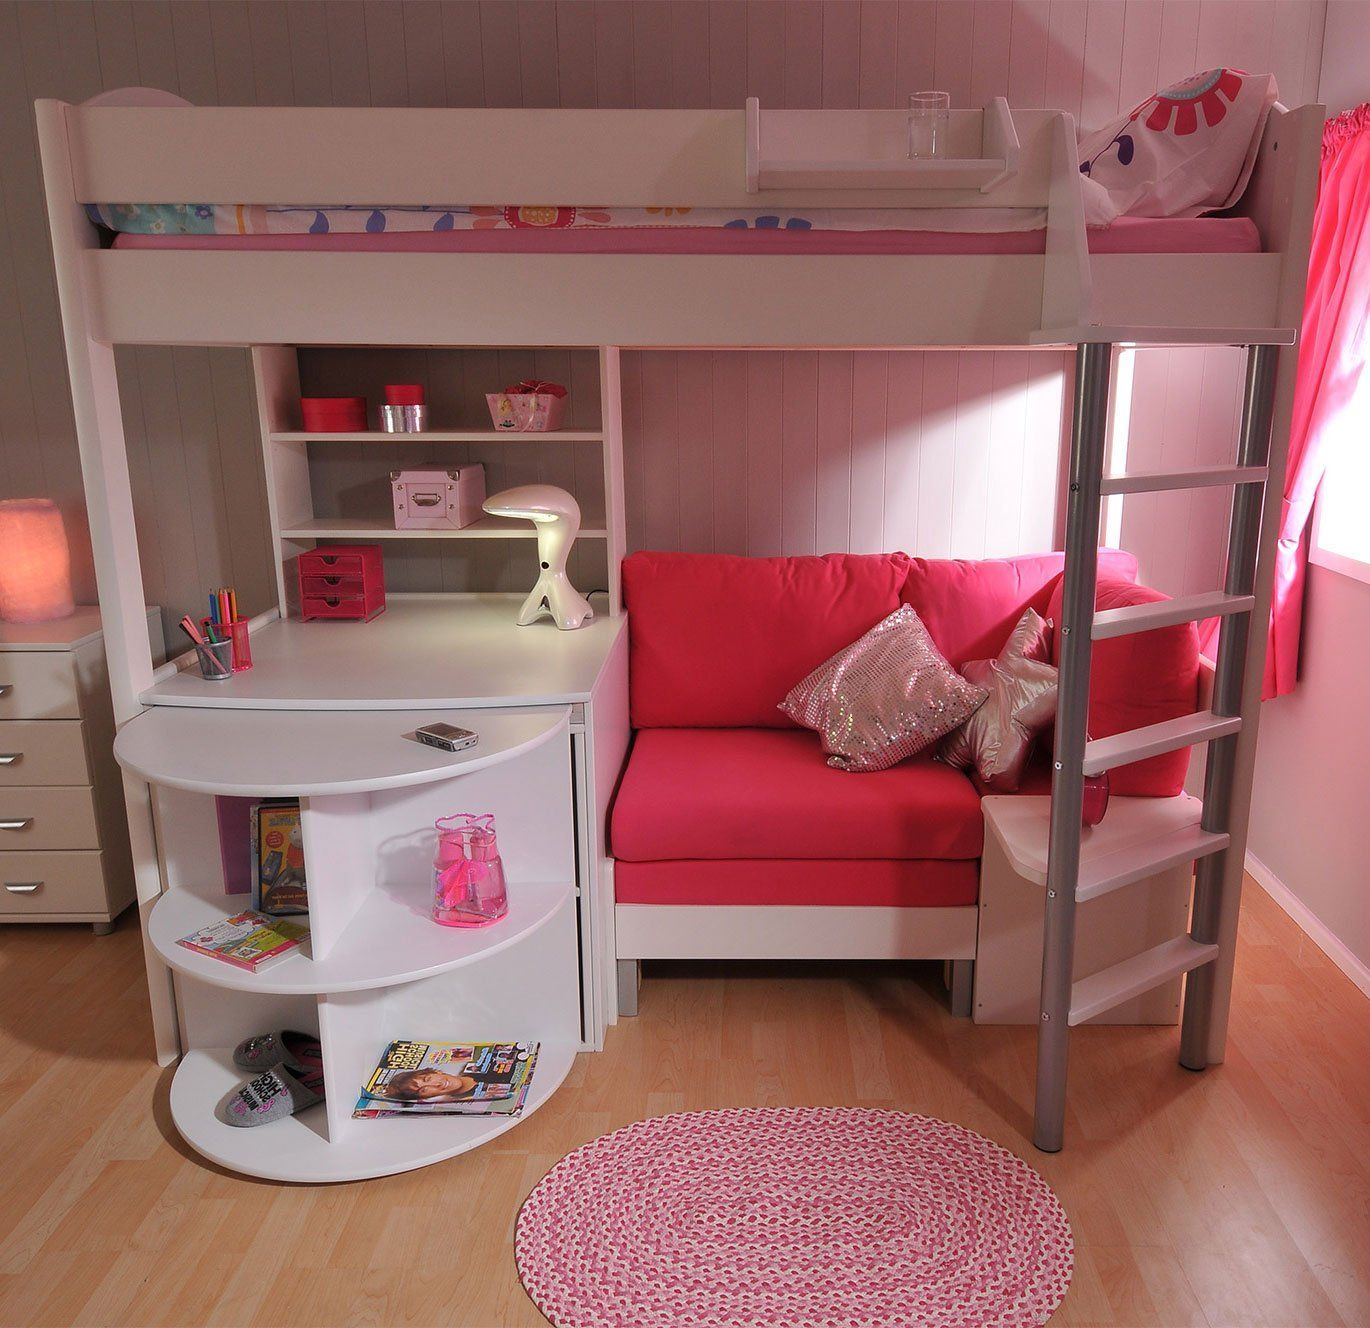 Best Stompa Casa 4 White Loft Bed With Desk And Pink Sofa Bed Amazon Sophies Bedroom In 2019 400 x 300